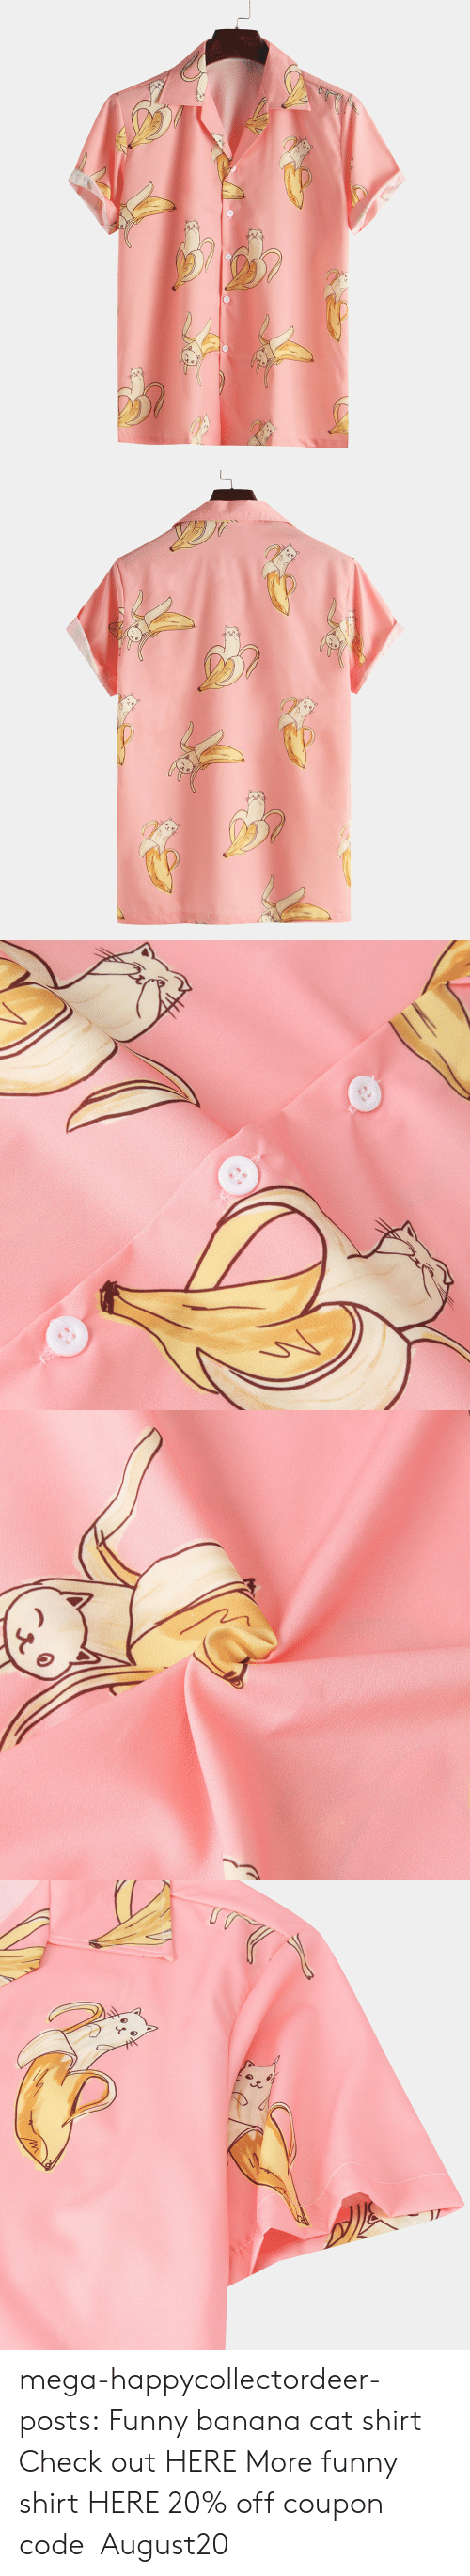 Banana: mega-happycollectordeer-posts: Funny banana cat shirt Check out HERE More funny shirt HERE 20% off coupon code:August20